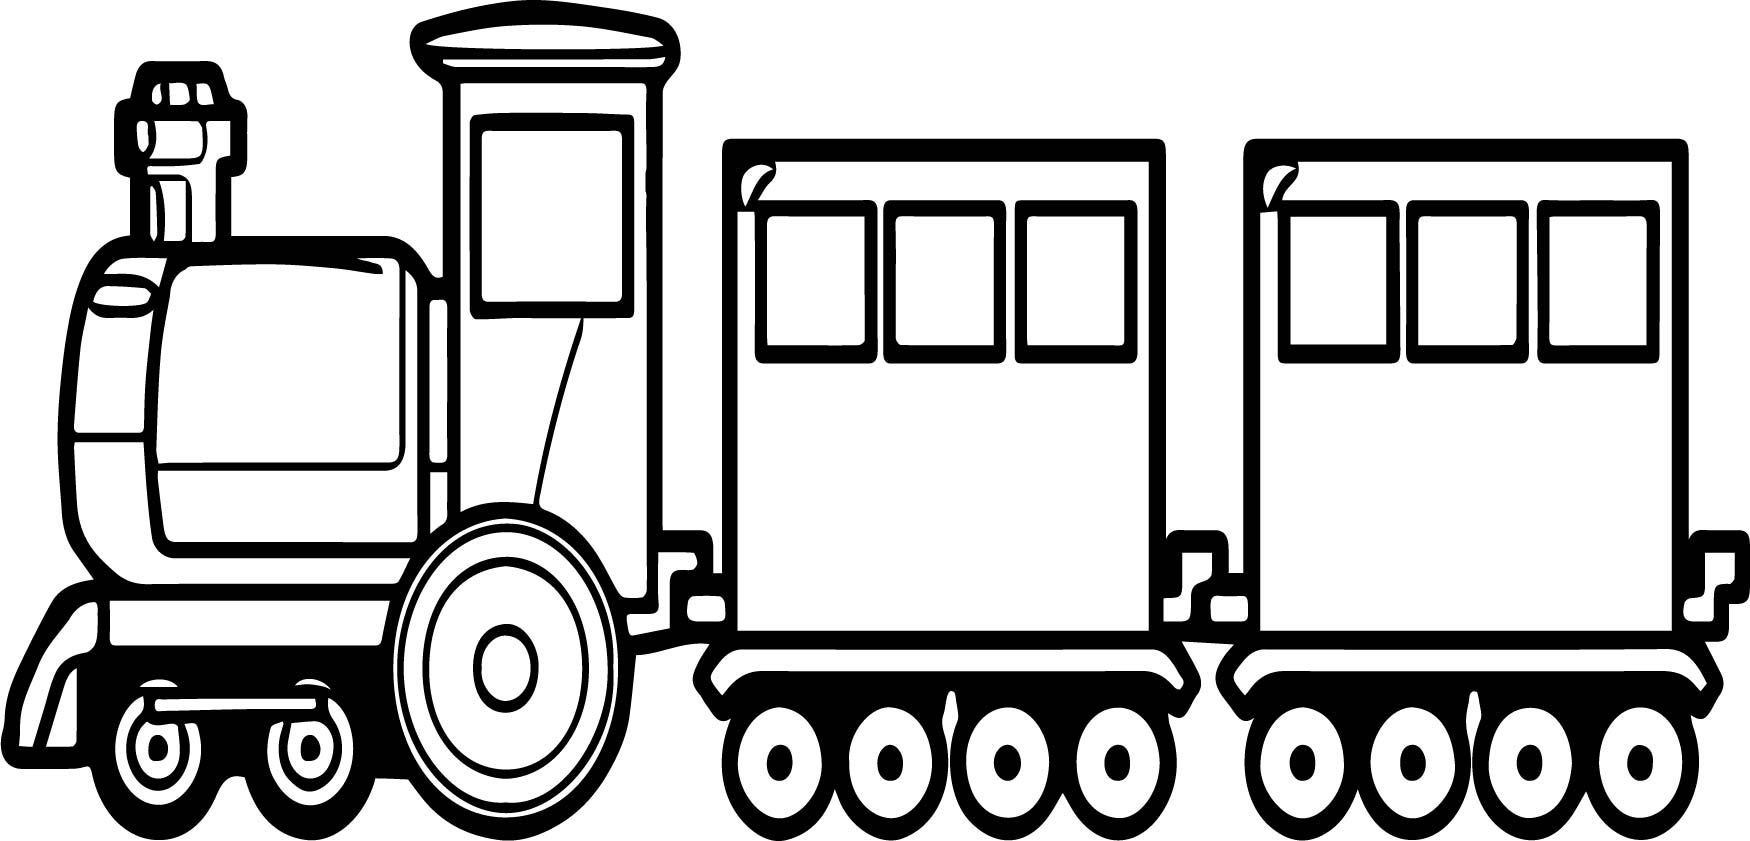 train coloring train coloring pages free download on clipartmag train coloring 1 1